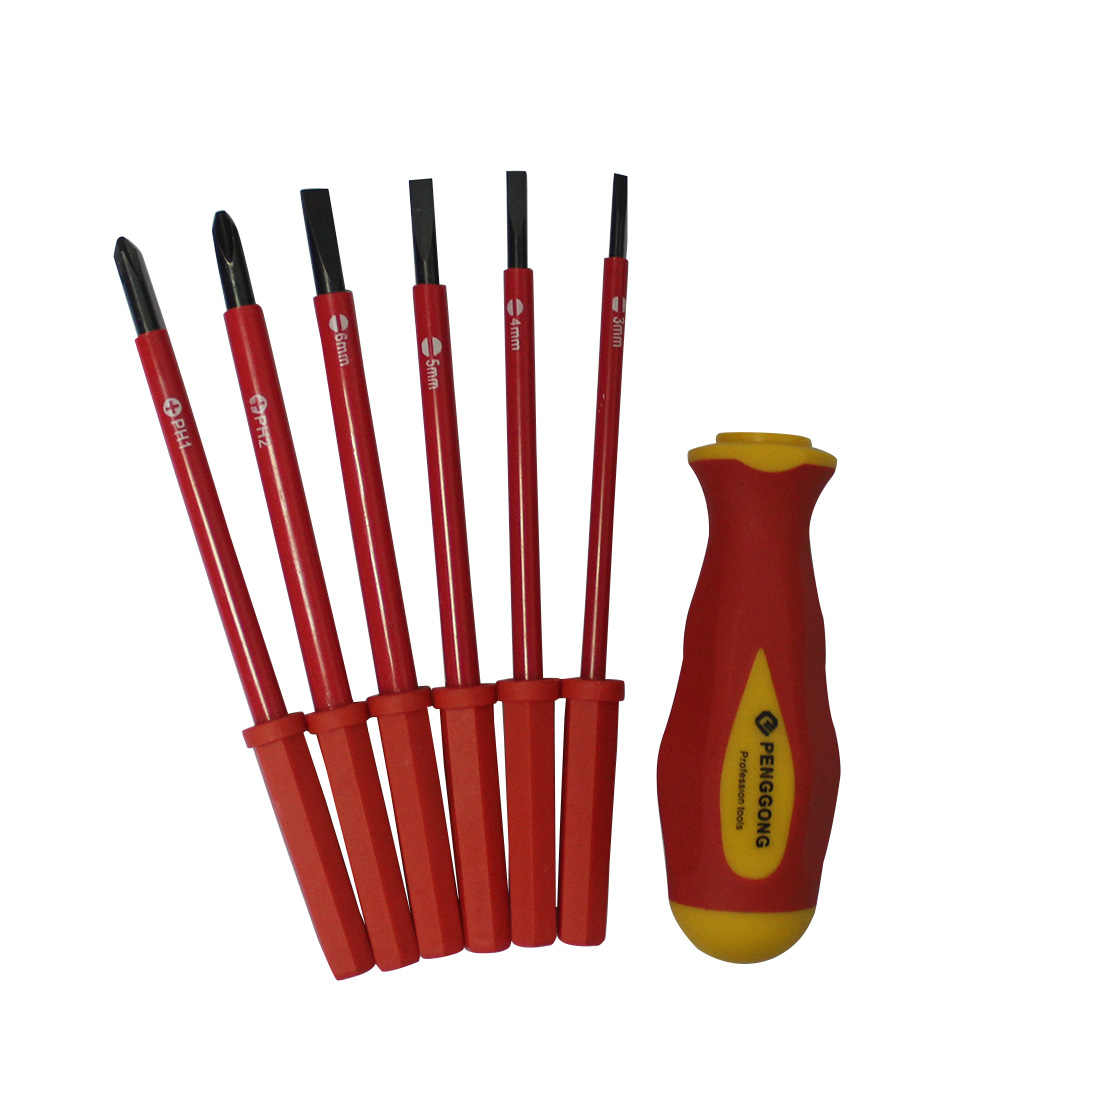 7 In 1 Magnetic Screwdriver Sets Universal Screw Driver Alloy Steel Slotted Screwdrivers Hand Tool Set For Family Tools